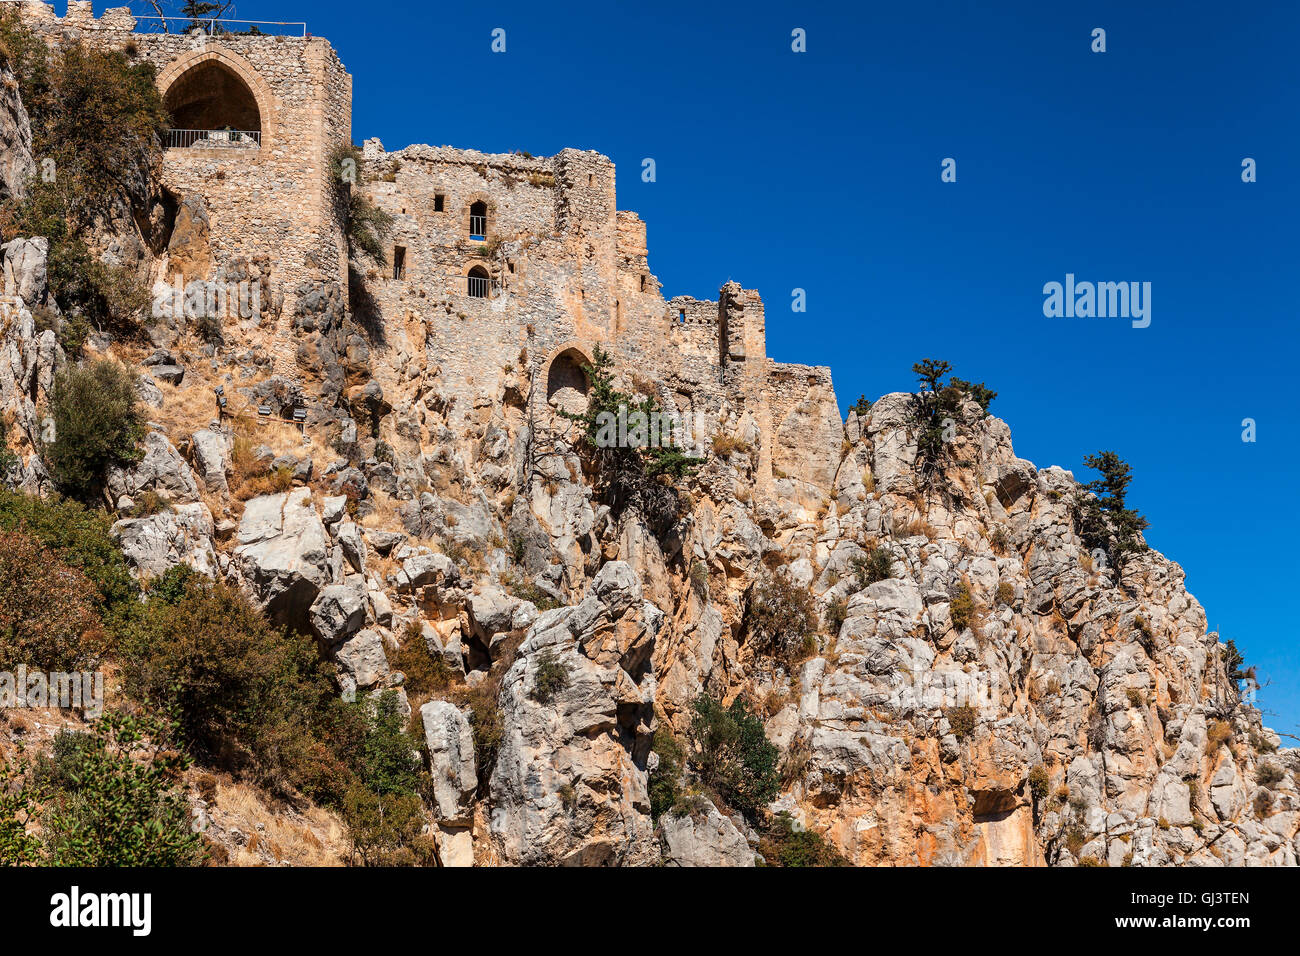 The Saint Hilarion Castle in North Cyprus. - Stock Image